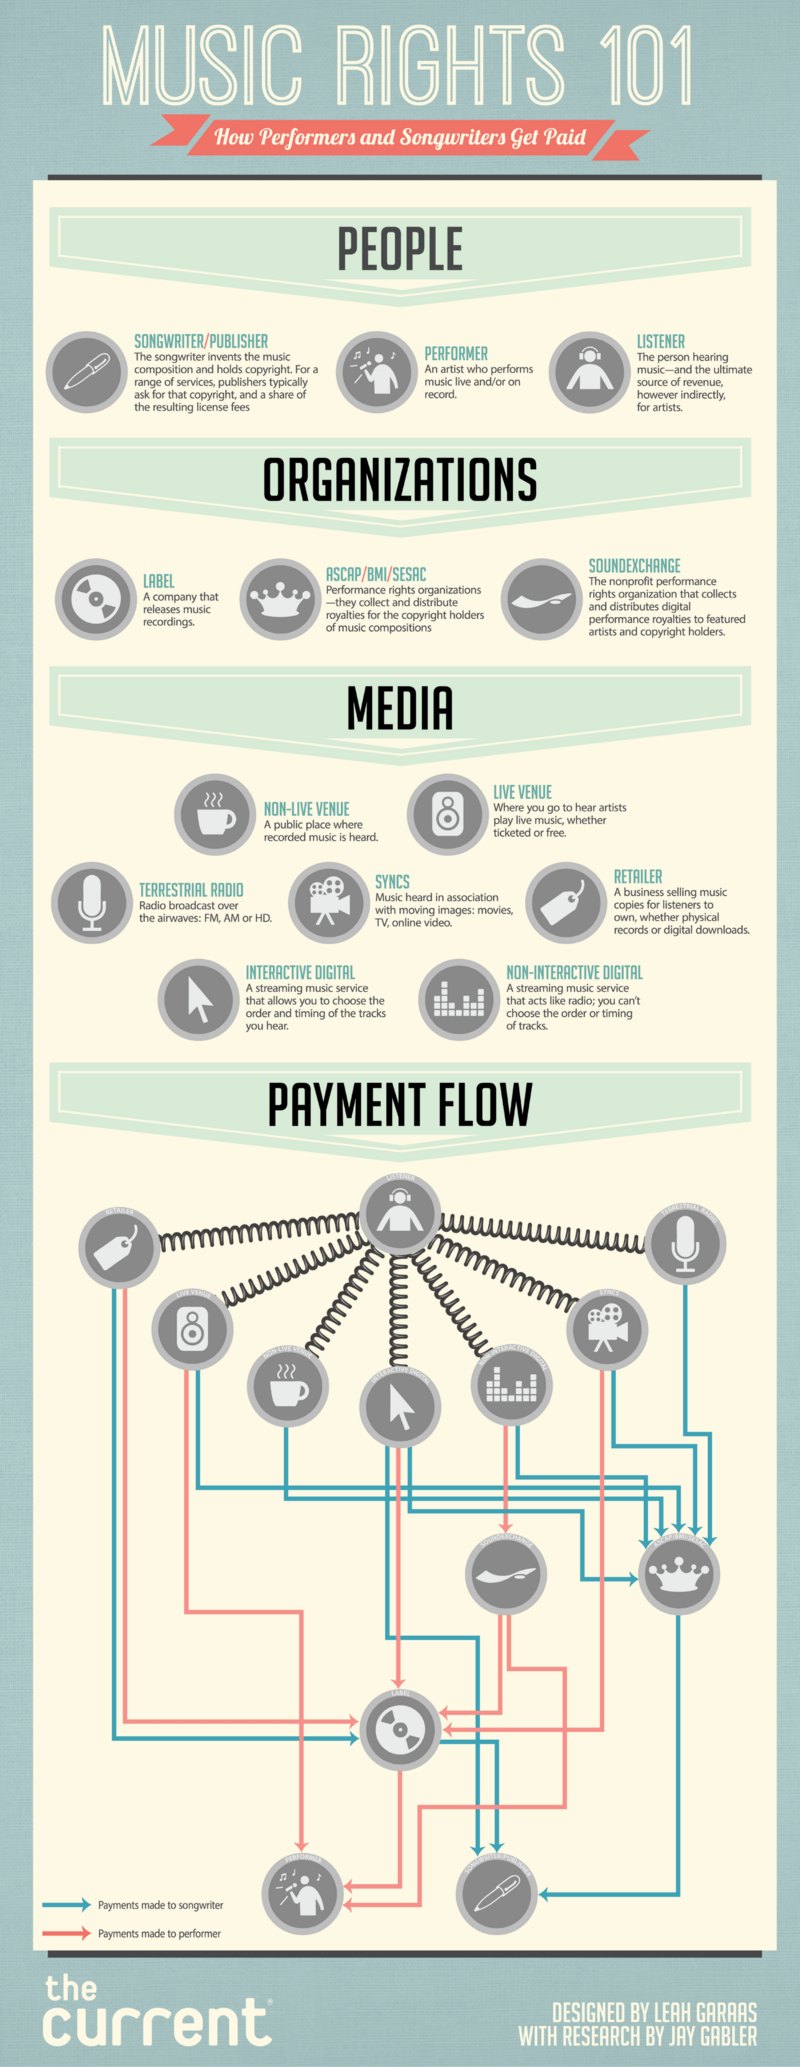 how musicians get paid